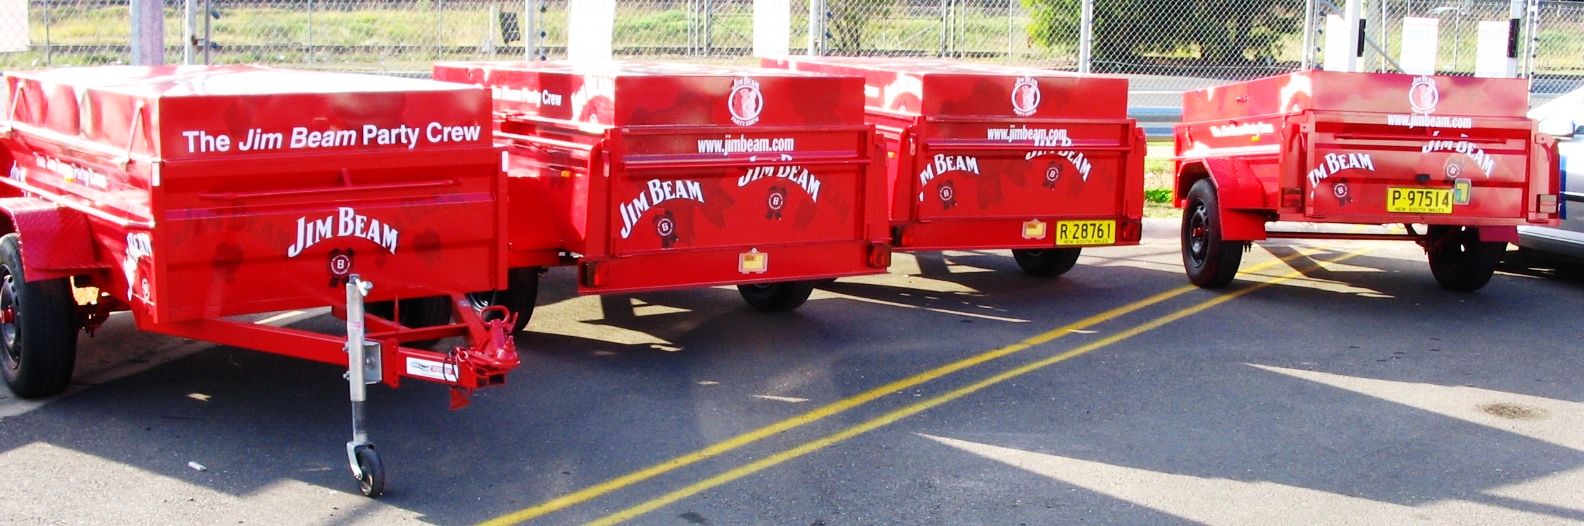 Fleet graphics. Jim Beam box trailers. Alcohol sampling and promotions. Vehicle graphics.